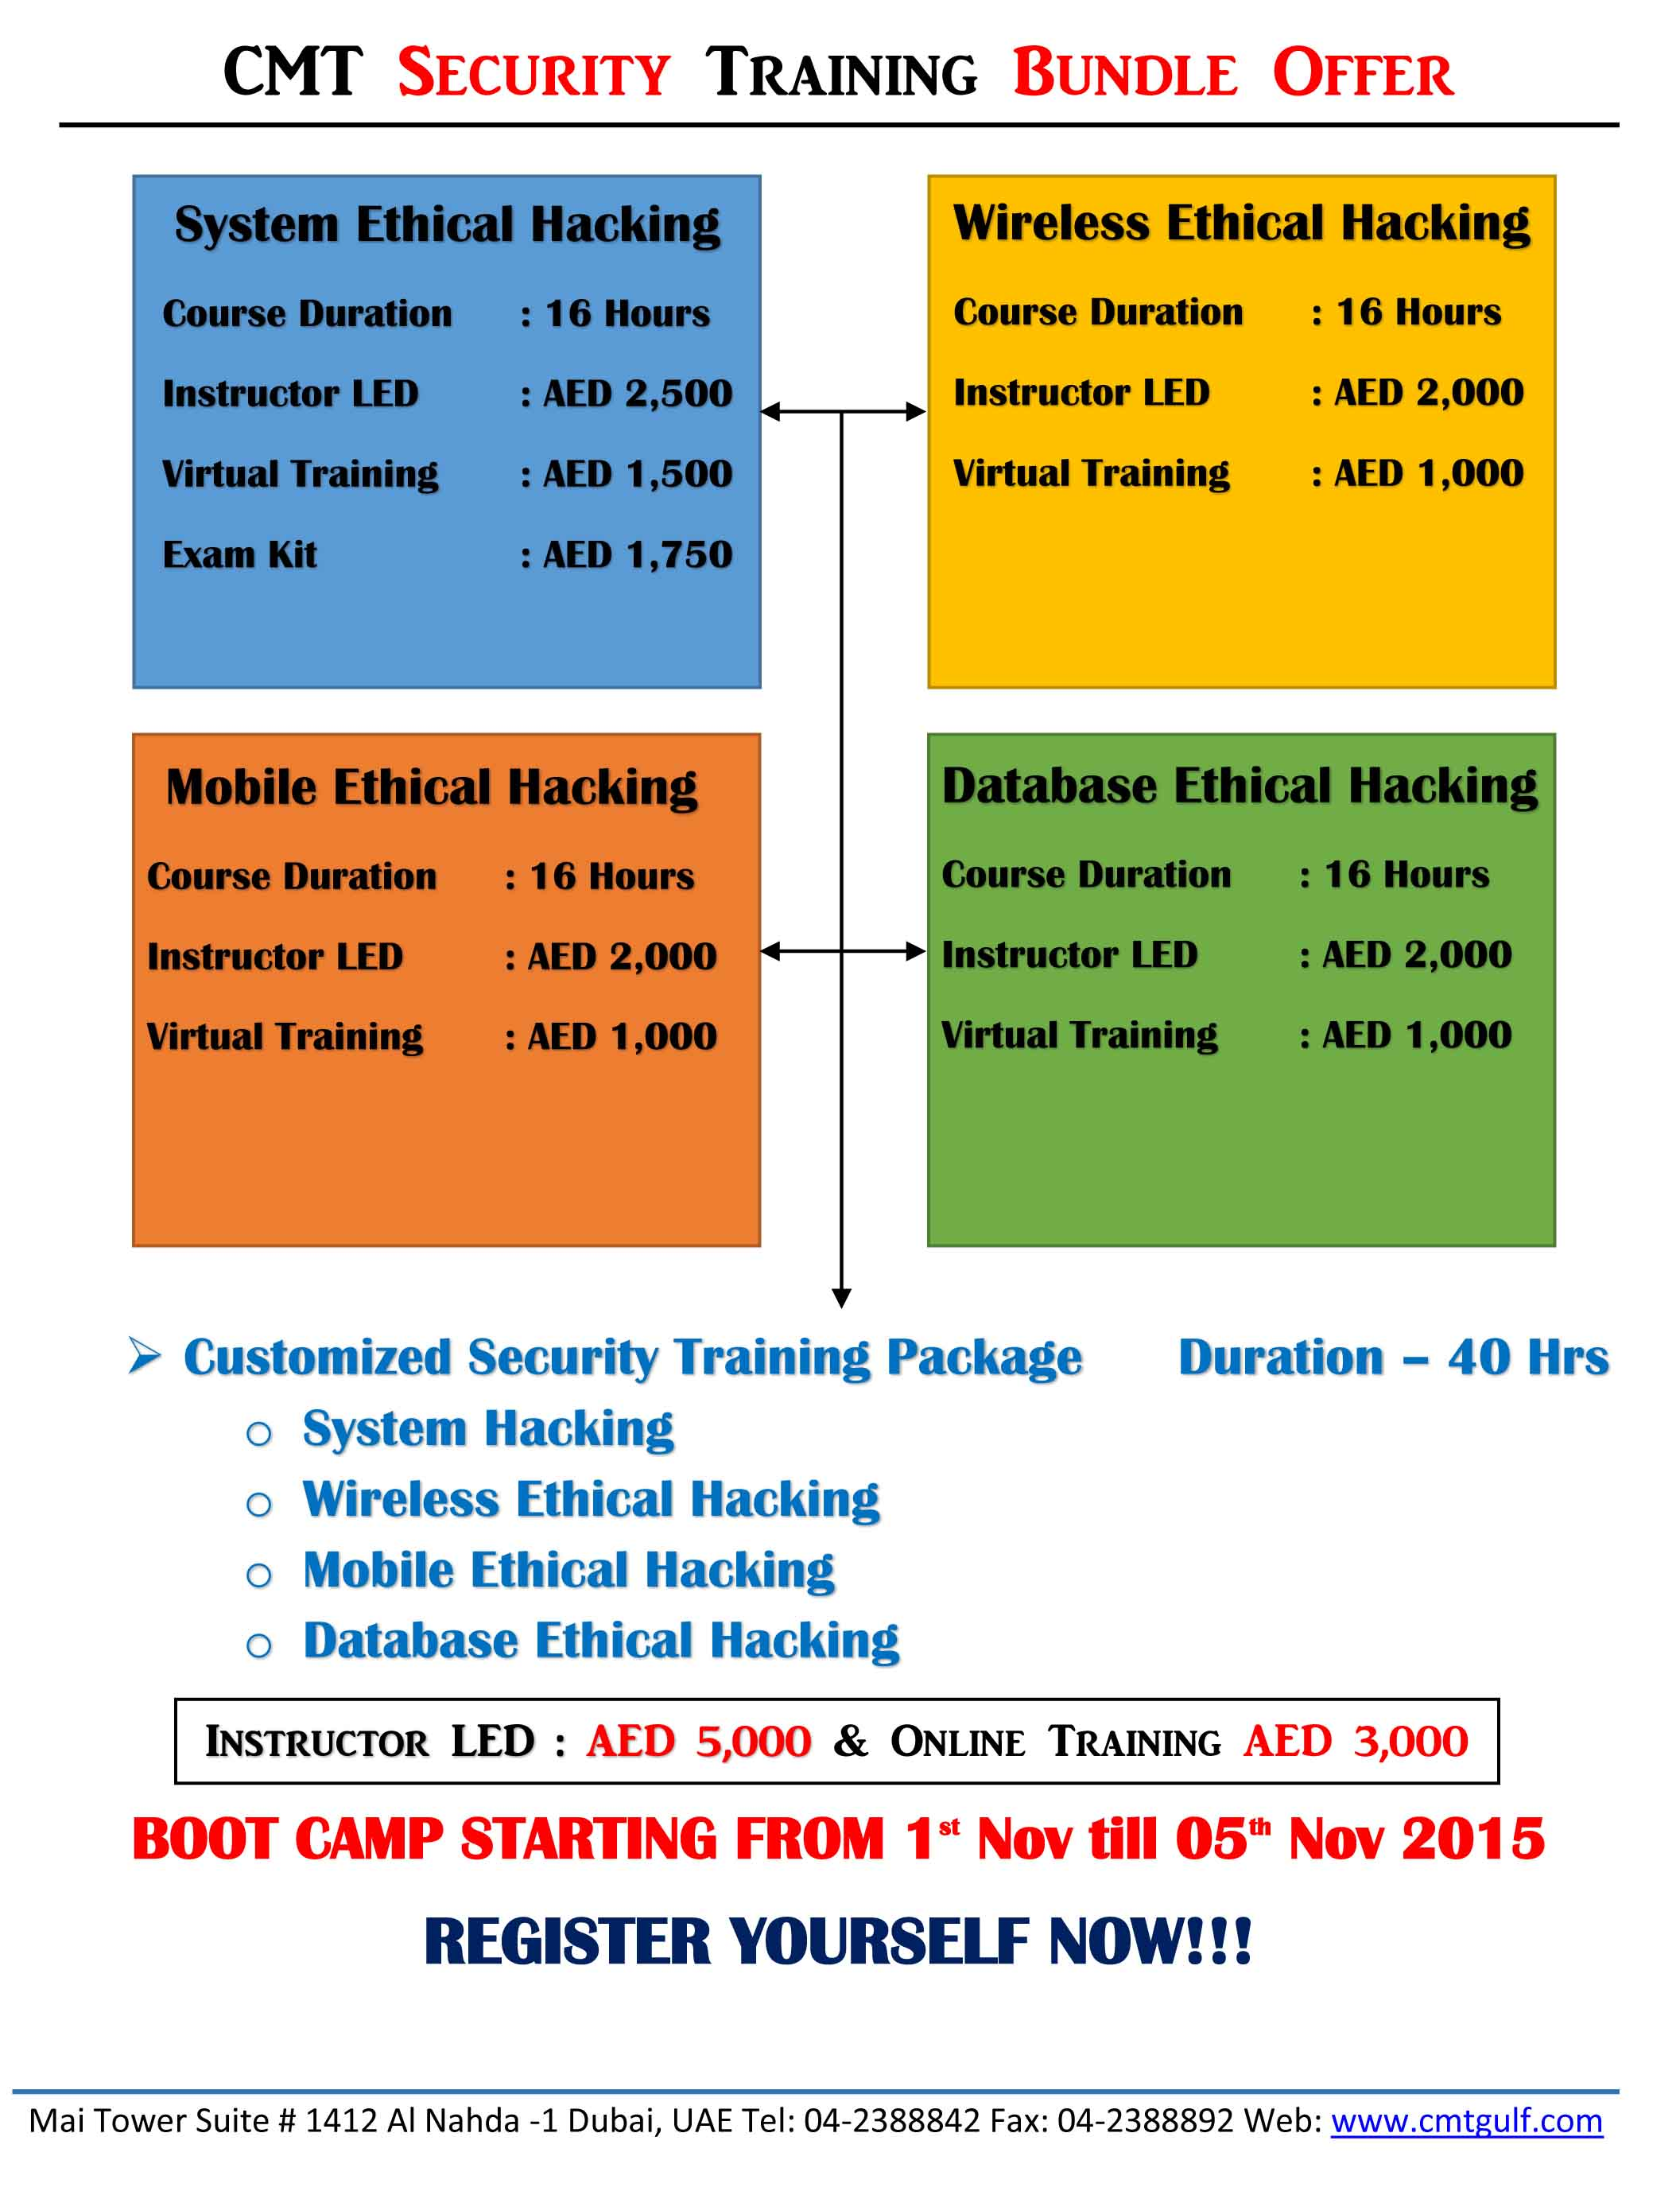 Bundle Offer for Security Training